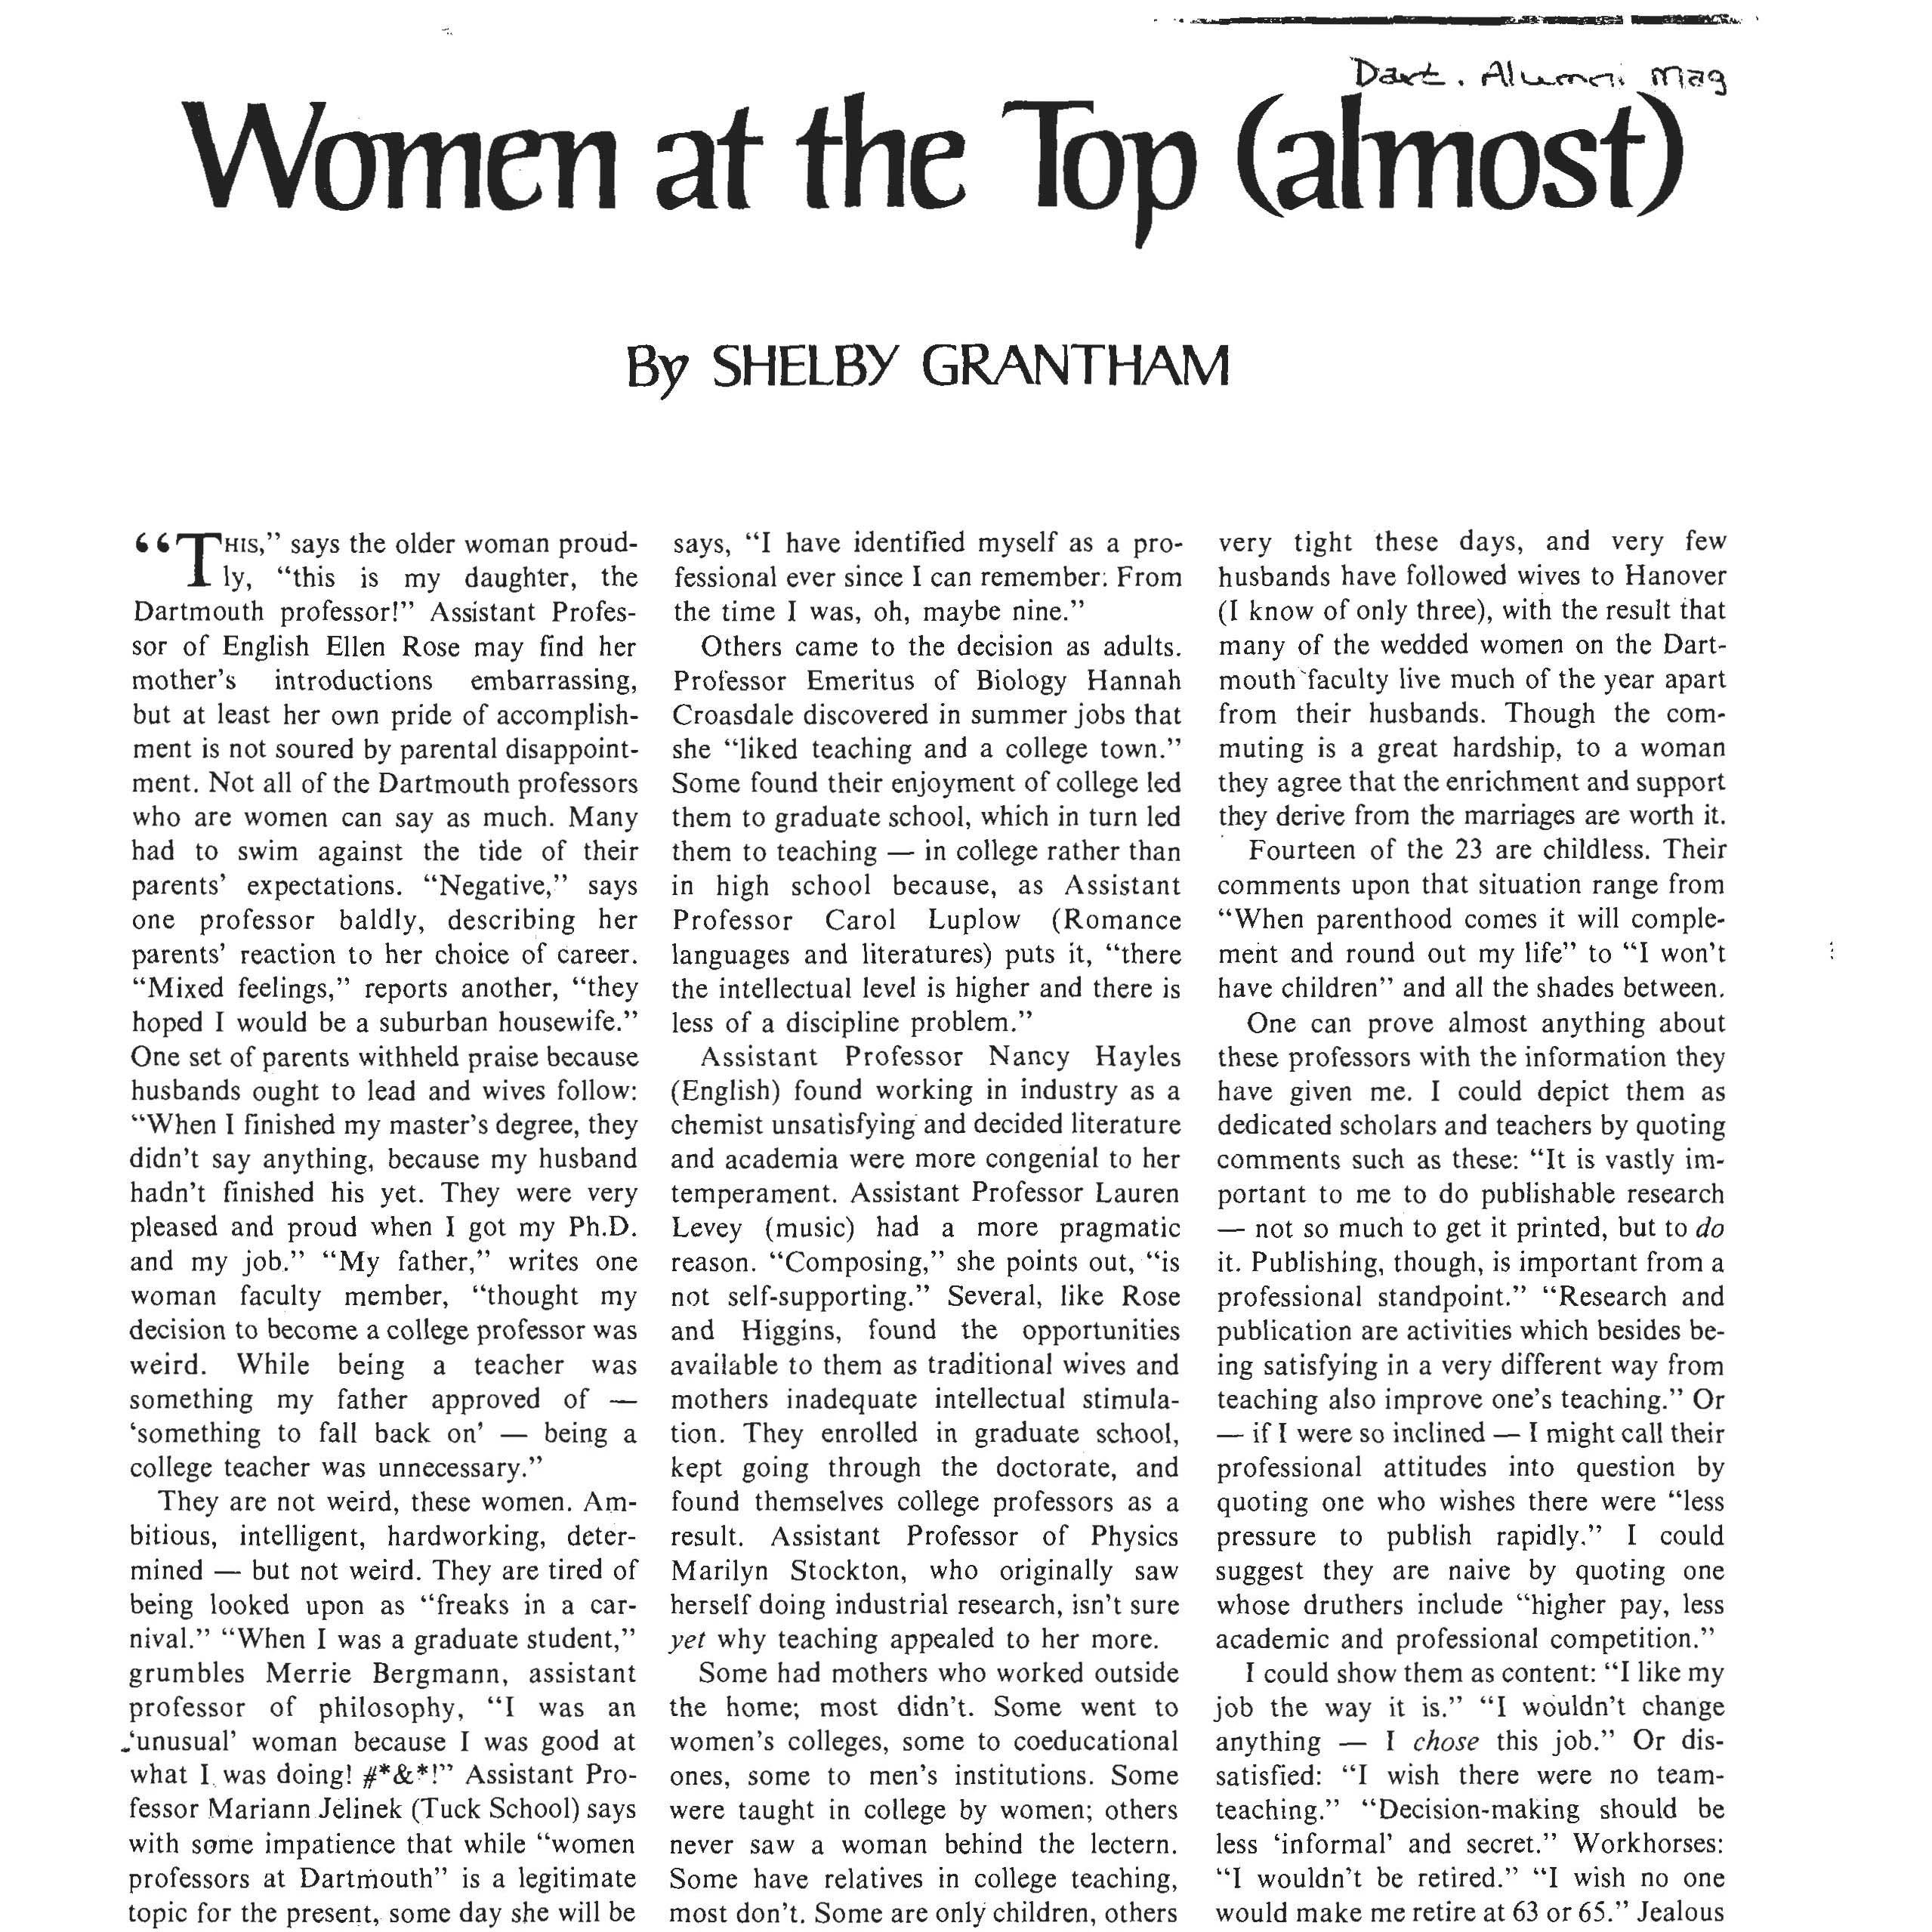 """An article by Shelby Grantham in the May 1977 issue of the Dartmouth Alumni Magazine, which hoped to highlight the state of affairs for women at the College and to be a brutally honest and self-aware piece written by and for Dartmouth. Grantham exchanged letters with many key players in the Biology Department in search of information about Croasdale's treatment in the Department, especially when she was younger. In a very lengthy response to Grantham's questions, Bill Ballard shared dozens of anecdotes about his former colleague, and said fondly of Hannah's teaching: """"Spectacular. Dynamic. Devoted."""""""